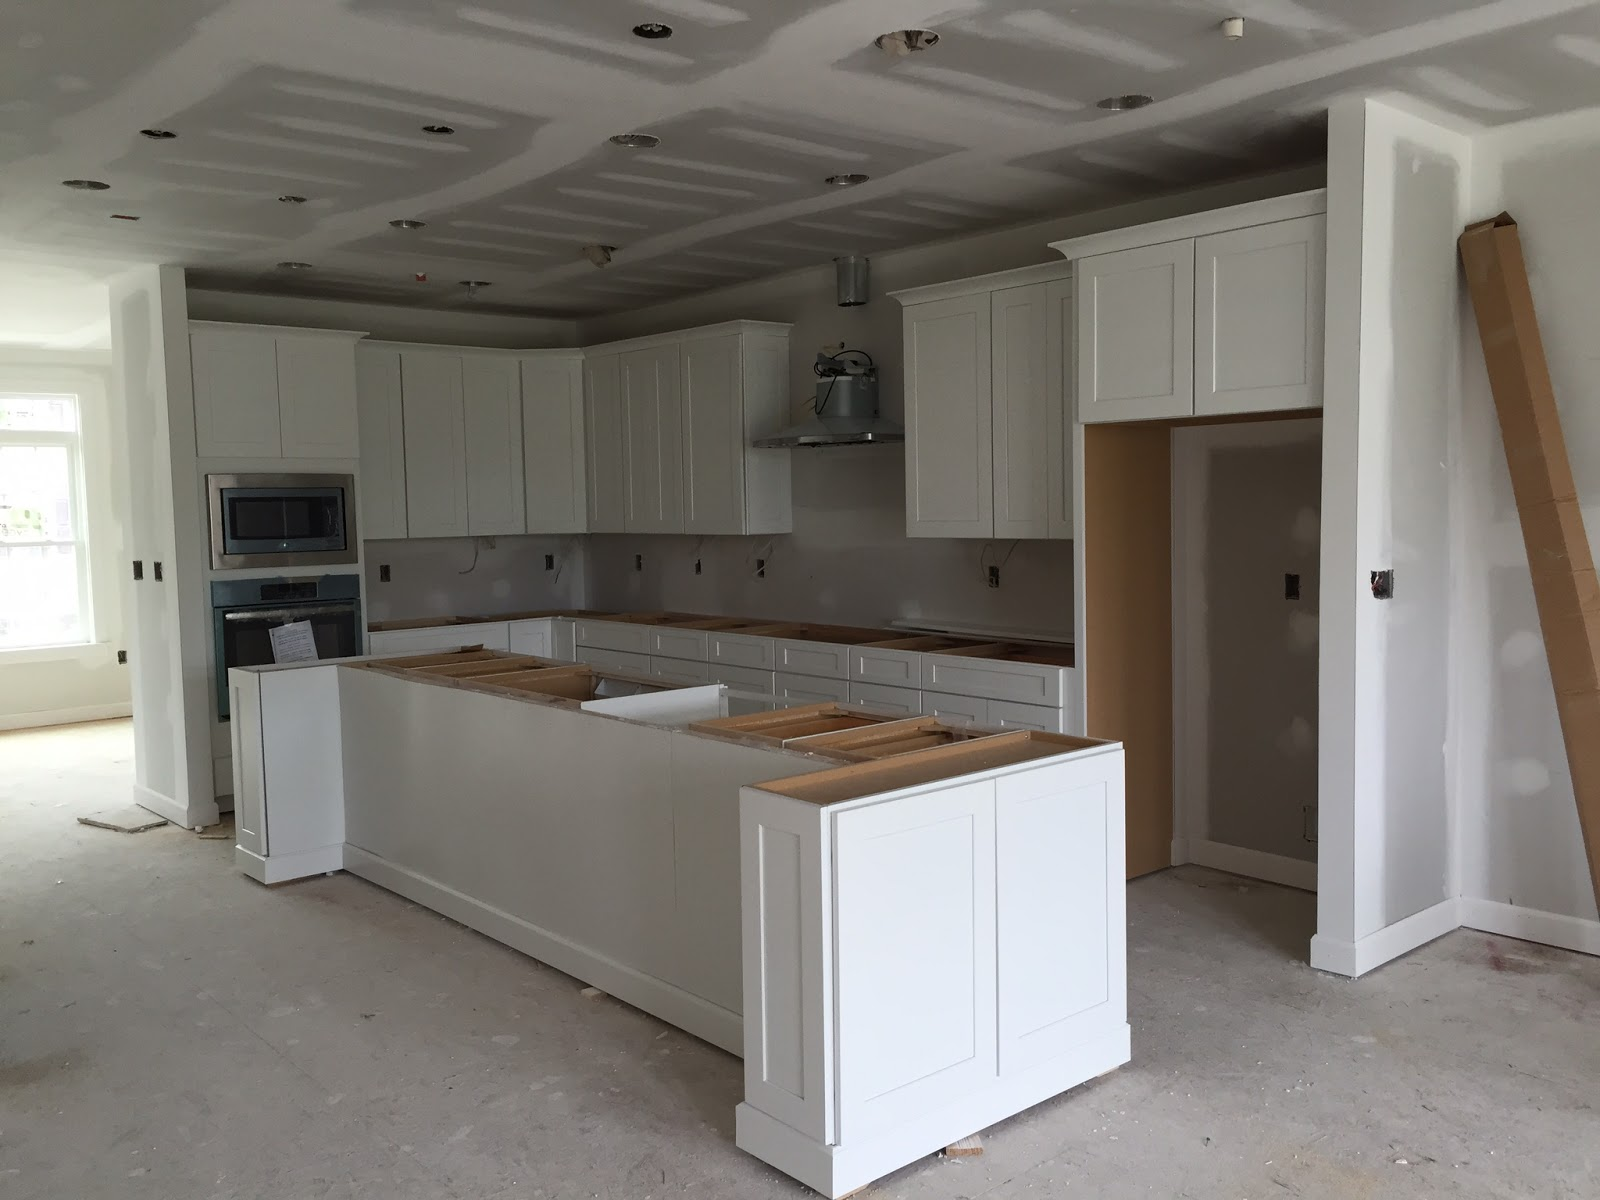 Masters Kitchen Base Cabinets Kitchen Cabinets Building Our Nvhomes Andrew Carnegie